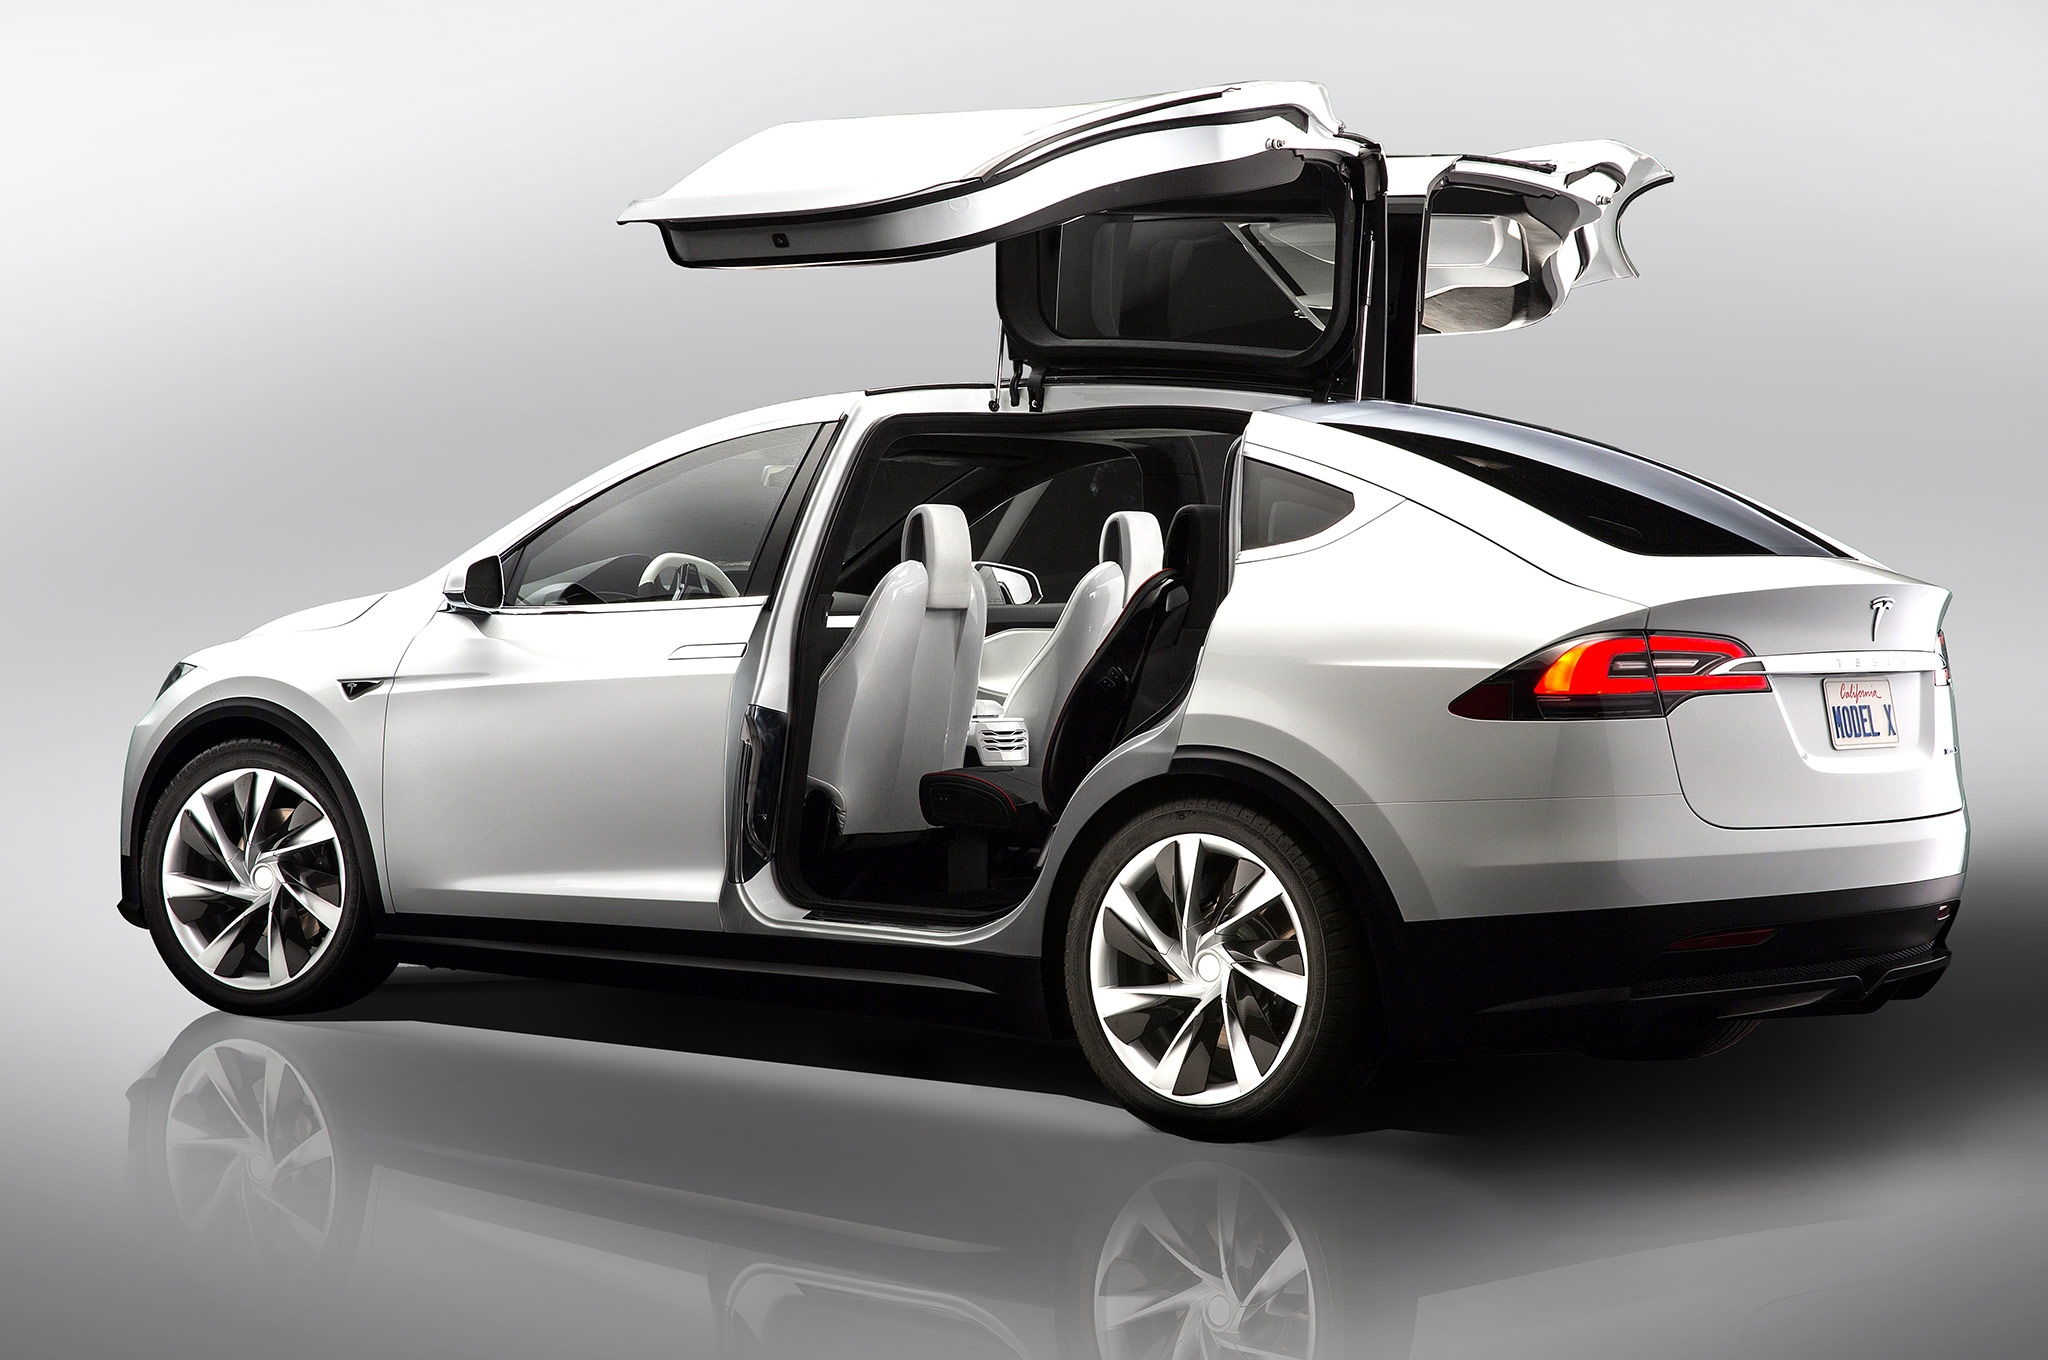 Tesla Model X A Family Van With Gullwing Doors 762hp And 3 8 Second 0 100km H Time